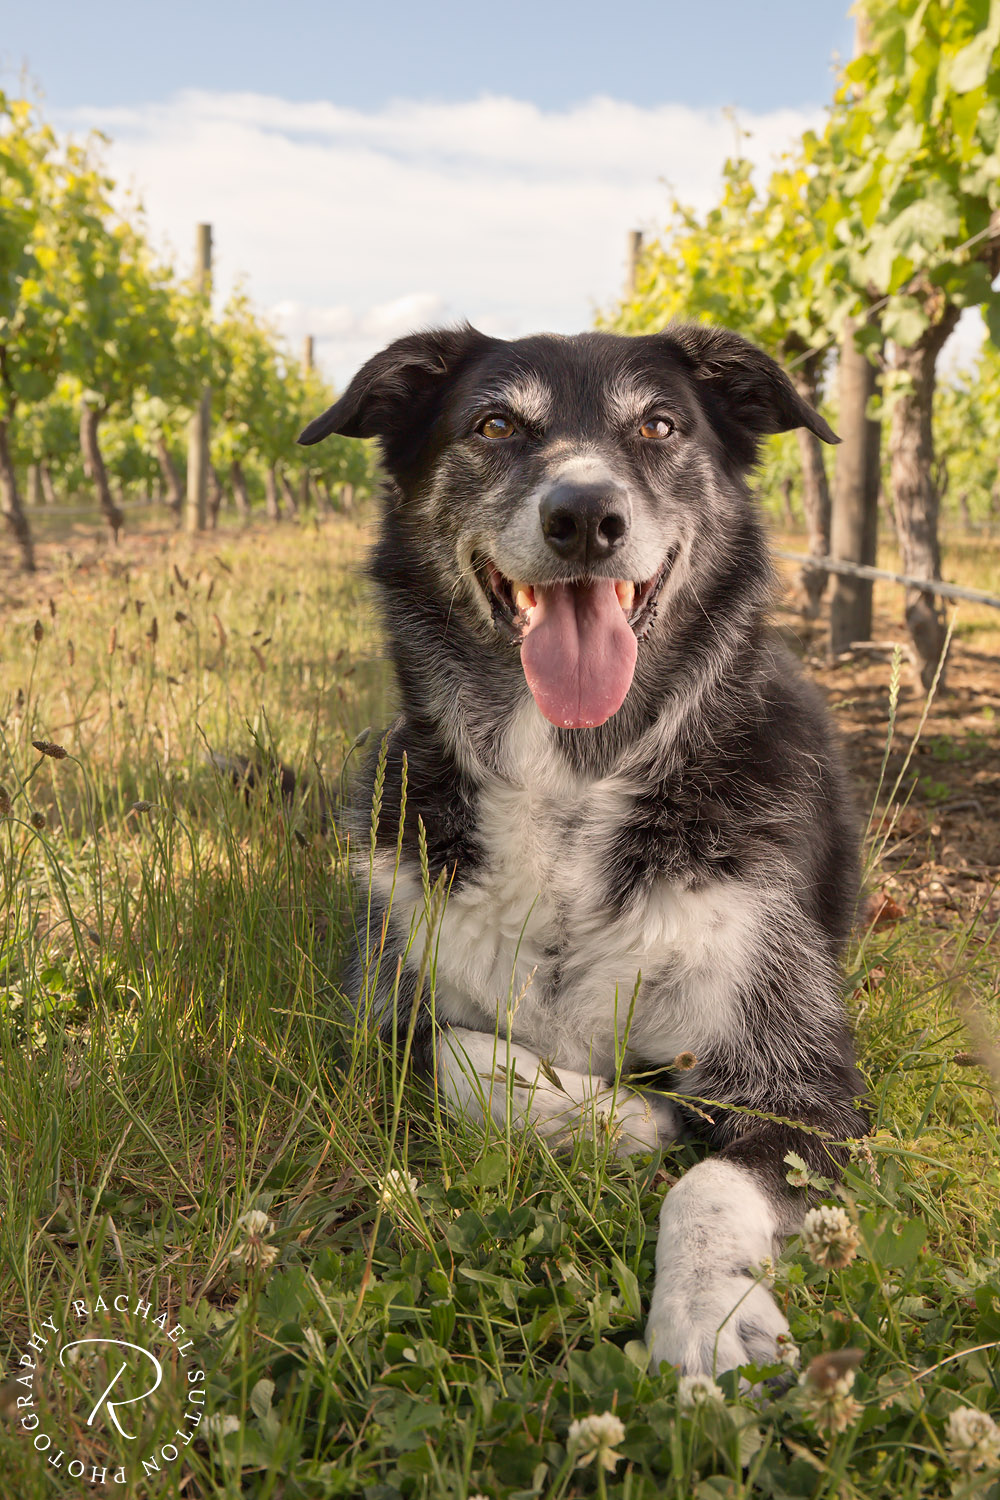 dog photo, dog in vineyard, dog photography